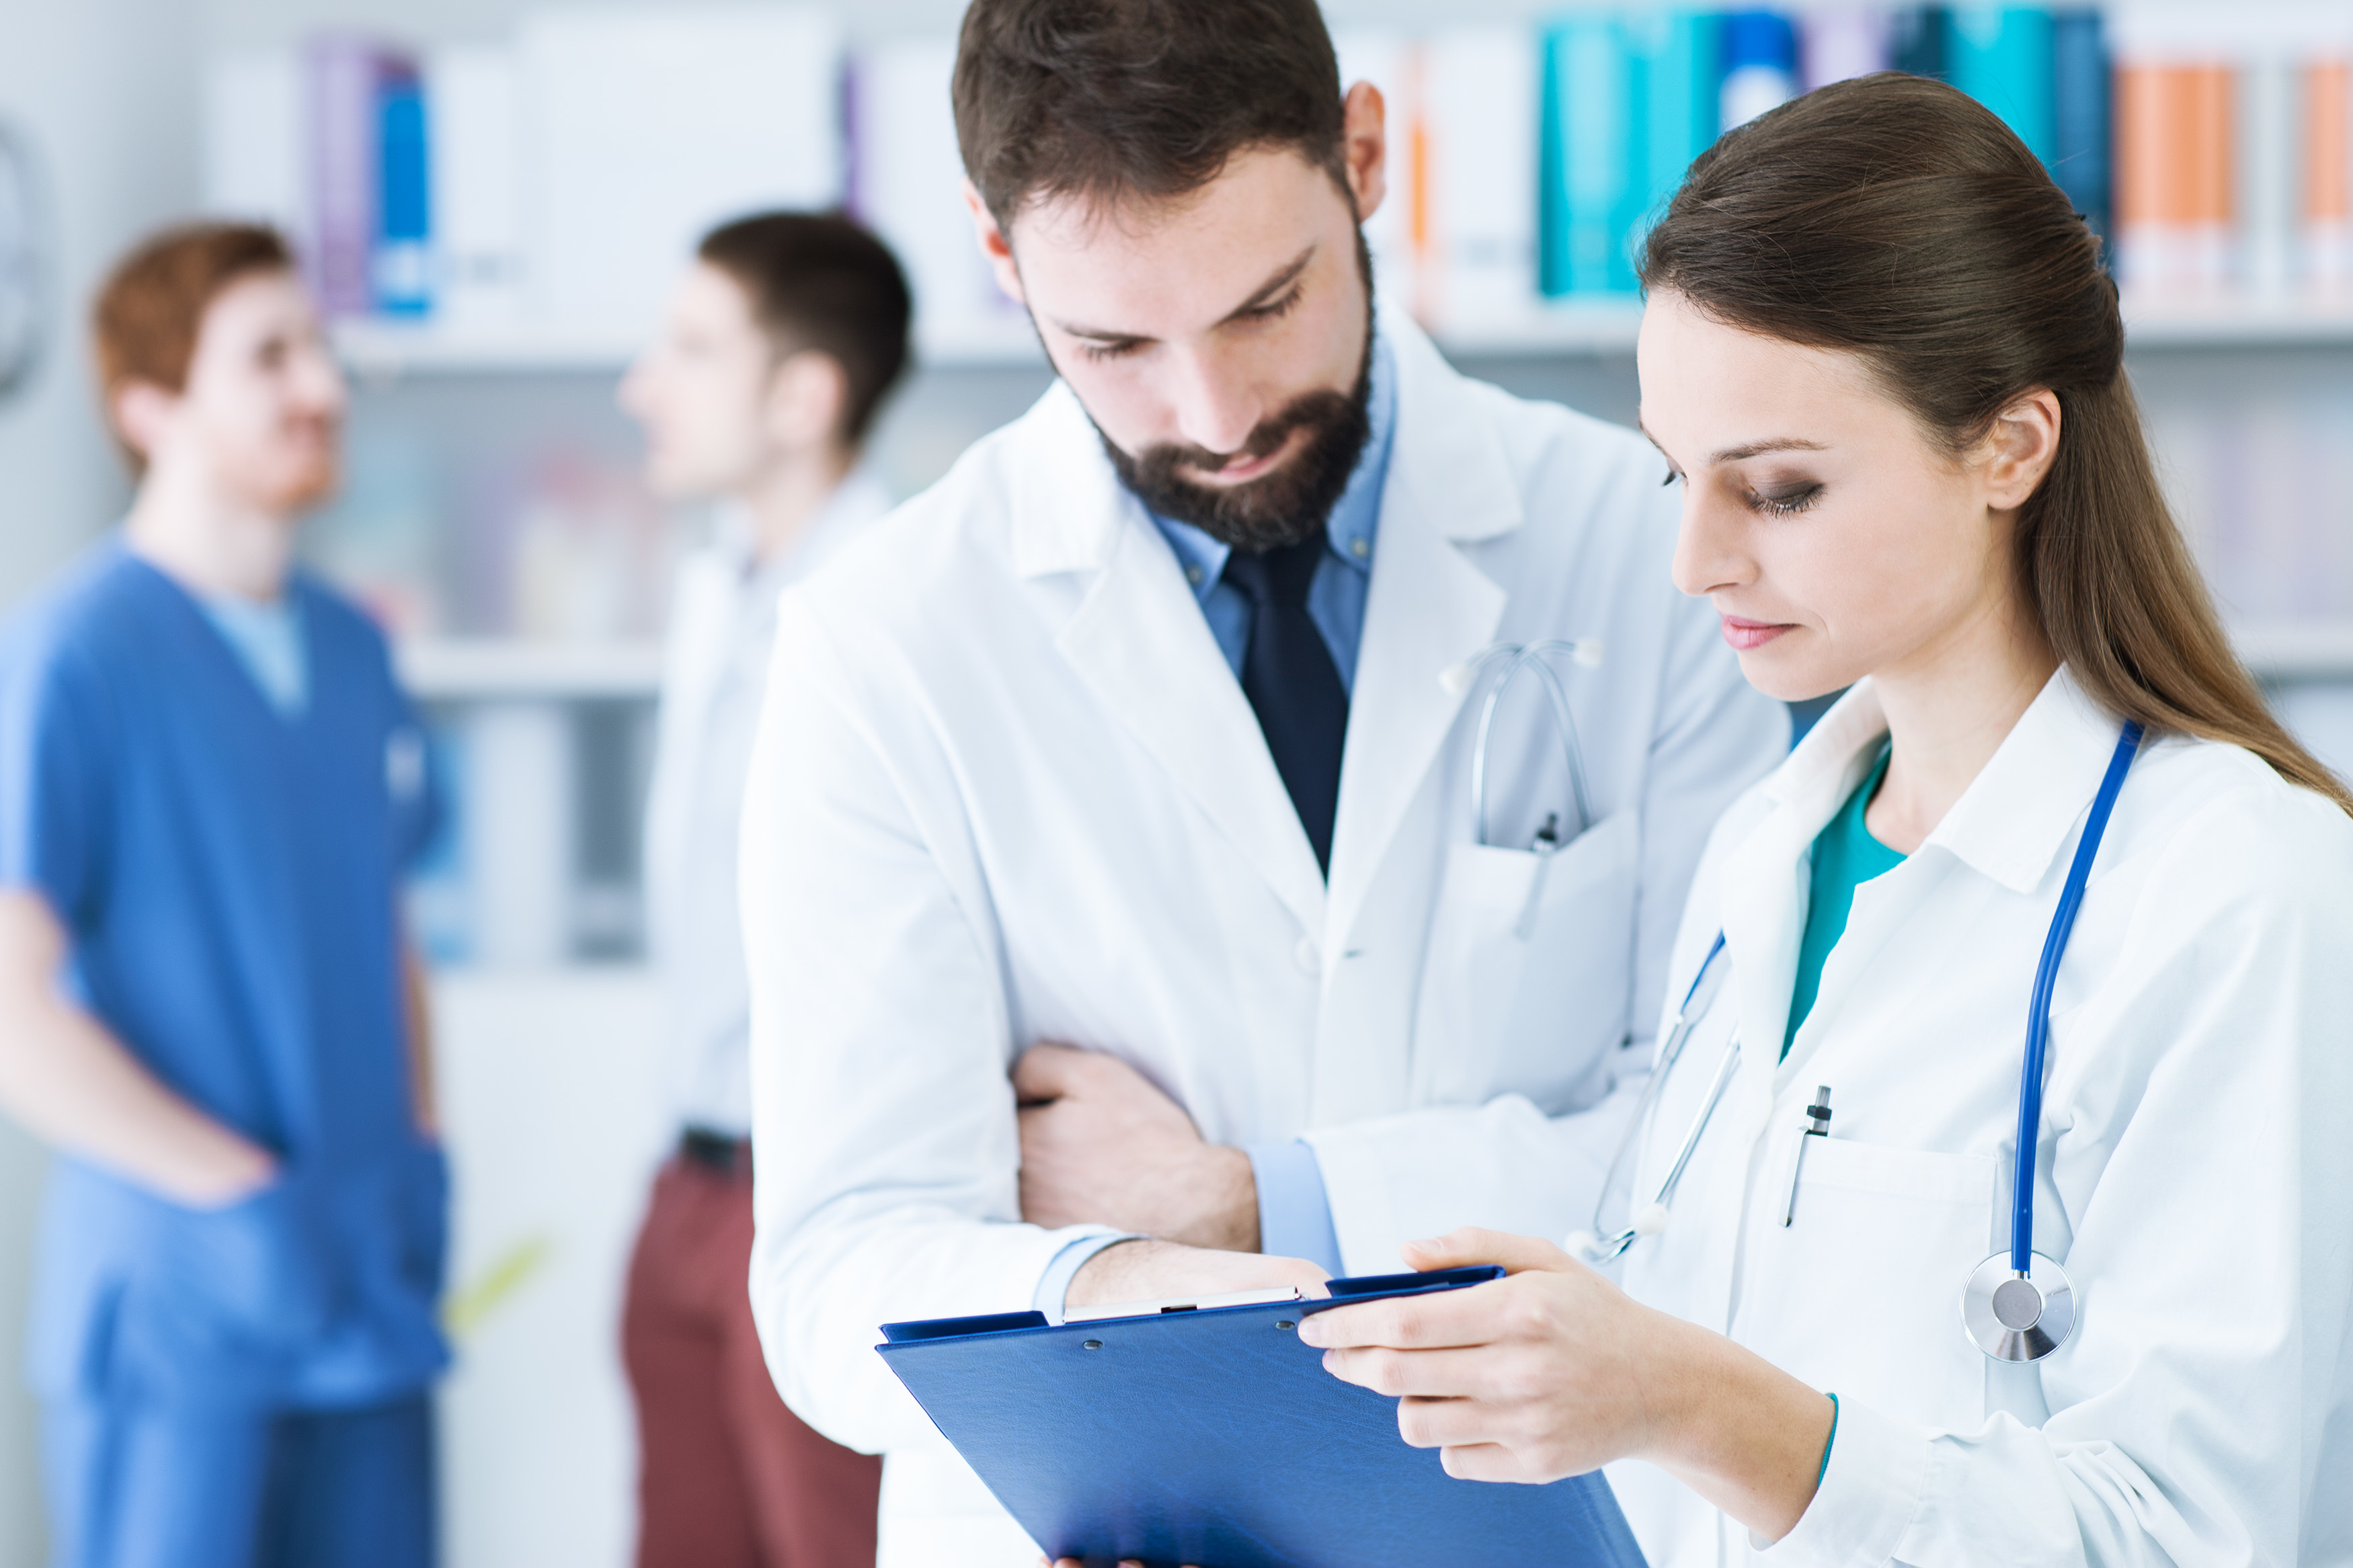 Doctors in the office checking patient's medical records on a clipboard, teamwork and healthcare concept